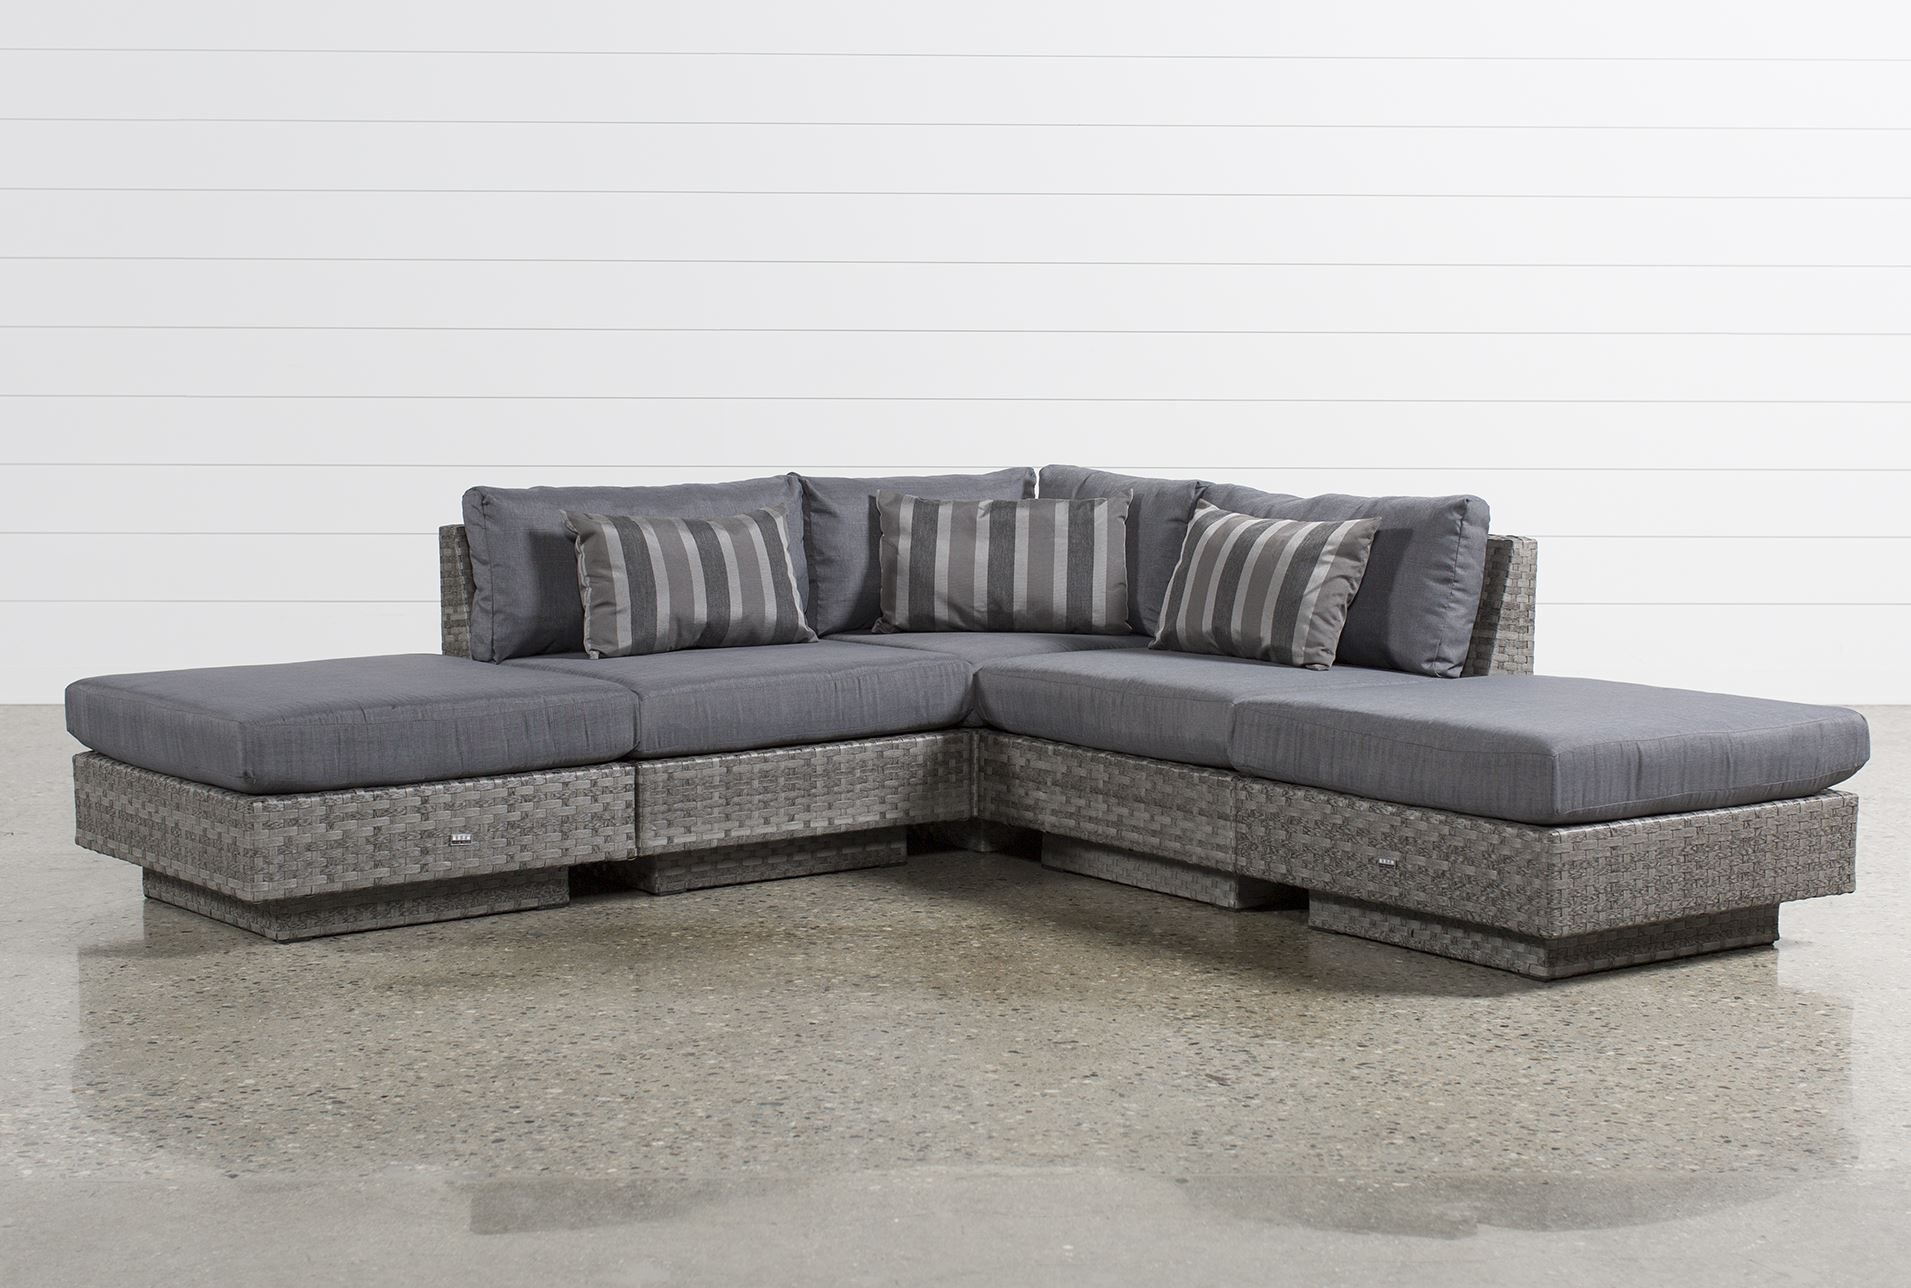 3 Piece Sectional Sofa Dimensions | Baci Living Room With Regard To Malbry Point 3 Piece Sectionals With Raf Chaise (Photo 18 of 25)